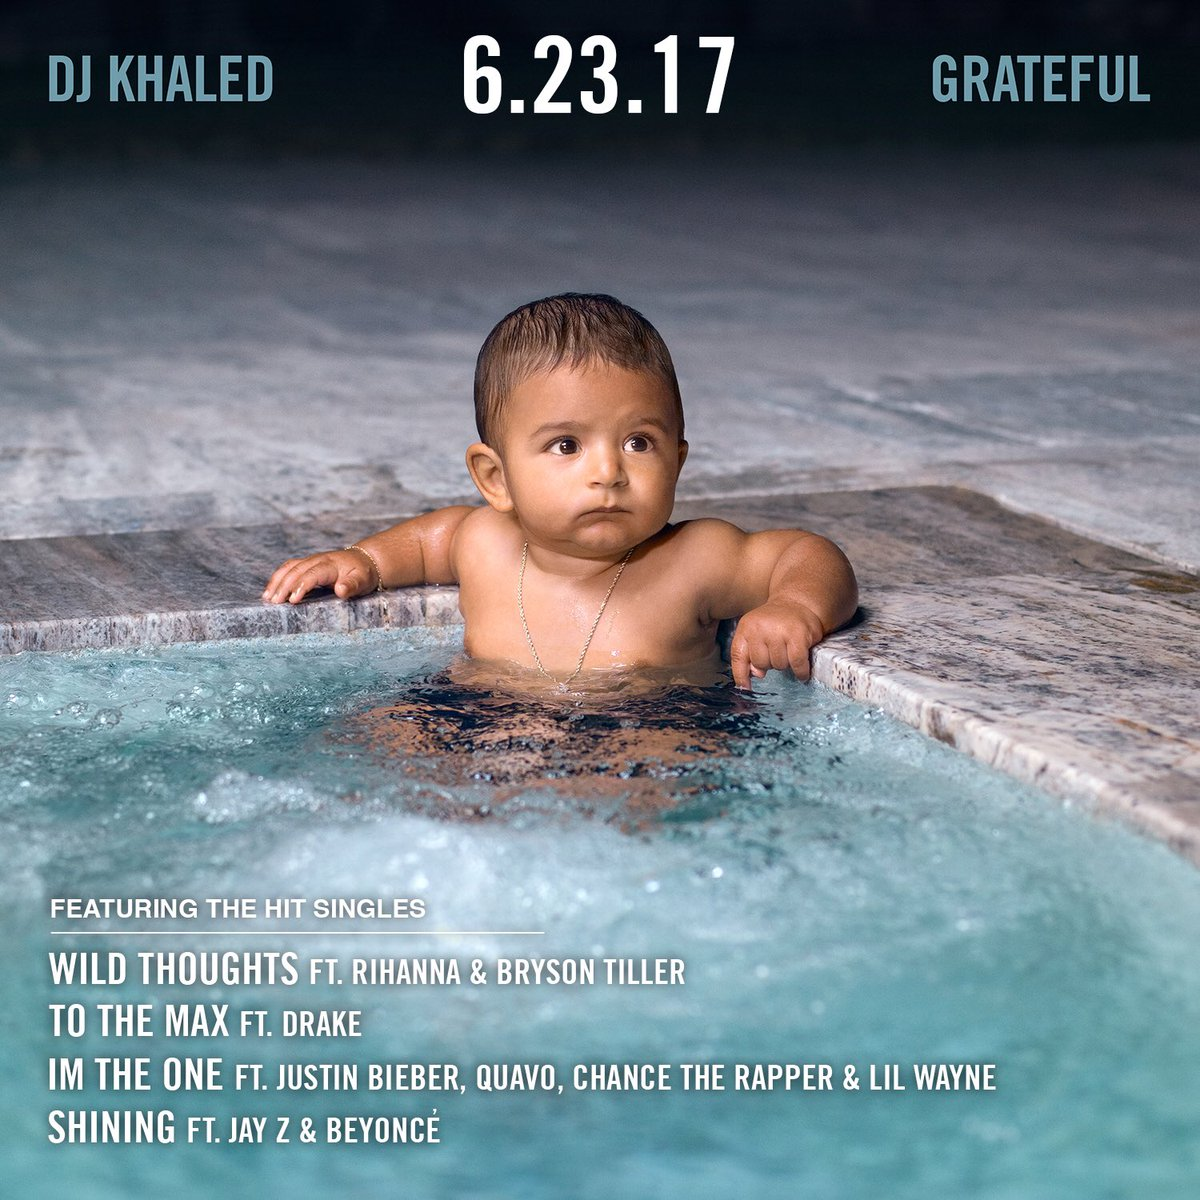 #GRATEFUL #12MIDNIGHT AVAILABLE EVERYWHERE!! 🙏🏽🔑🌺🦁🙏🏽 https://t.co/xMsD...